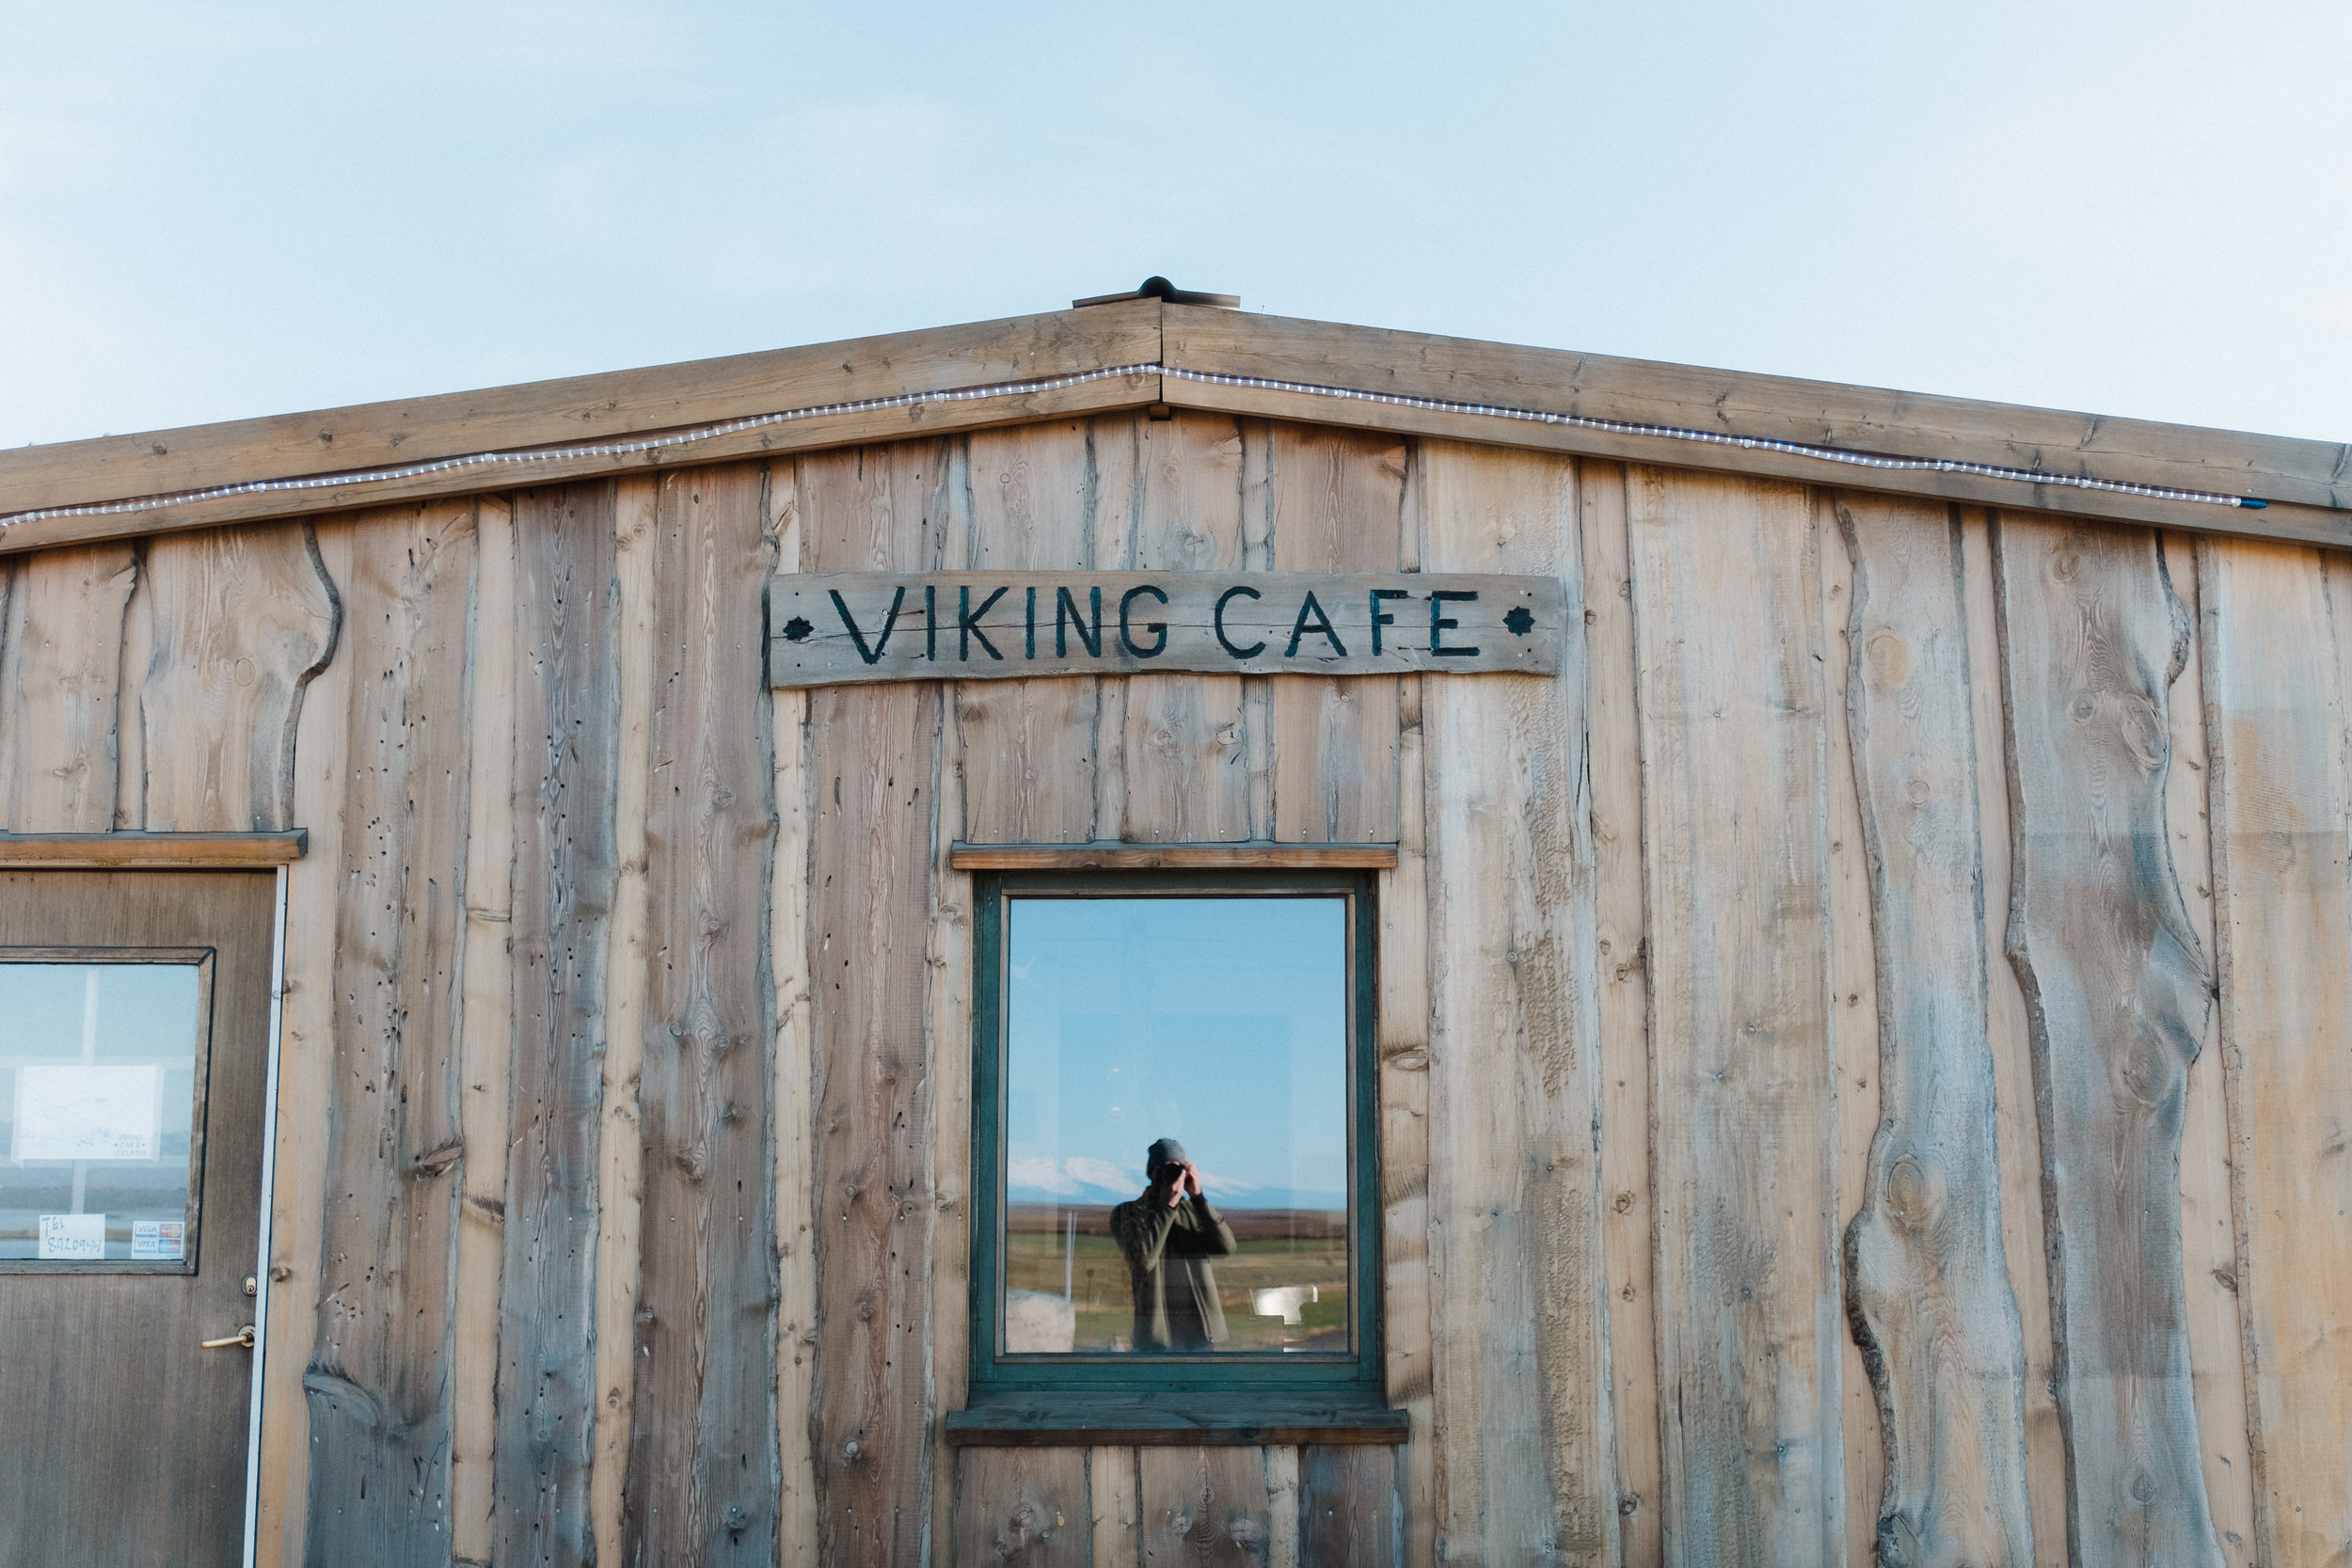 Viking-Cafe-6.jpg